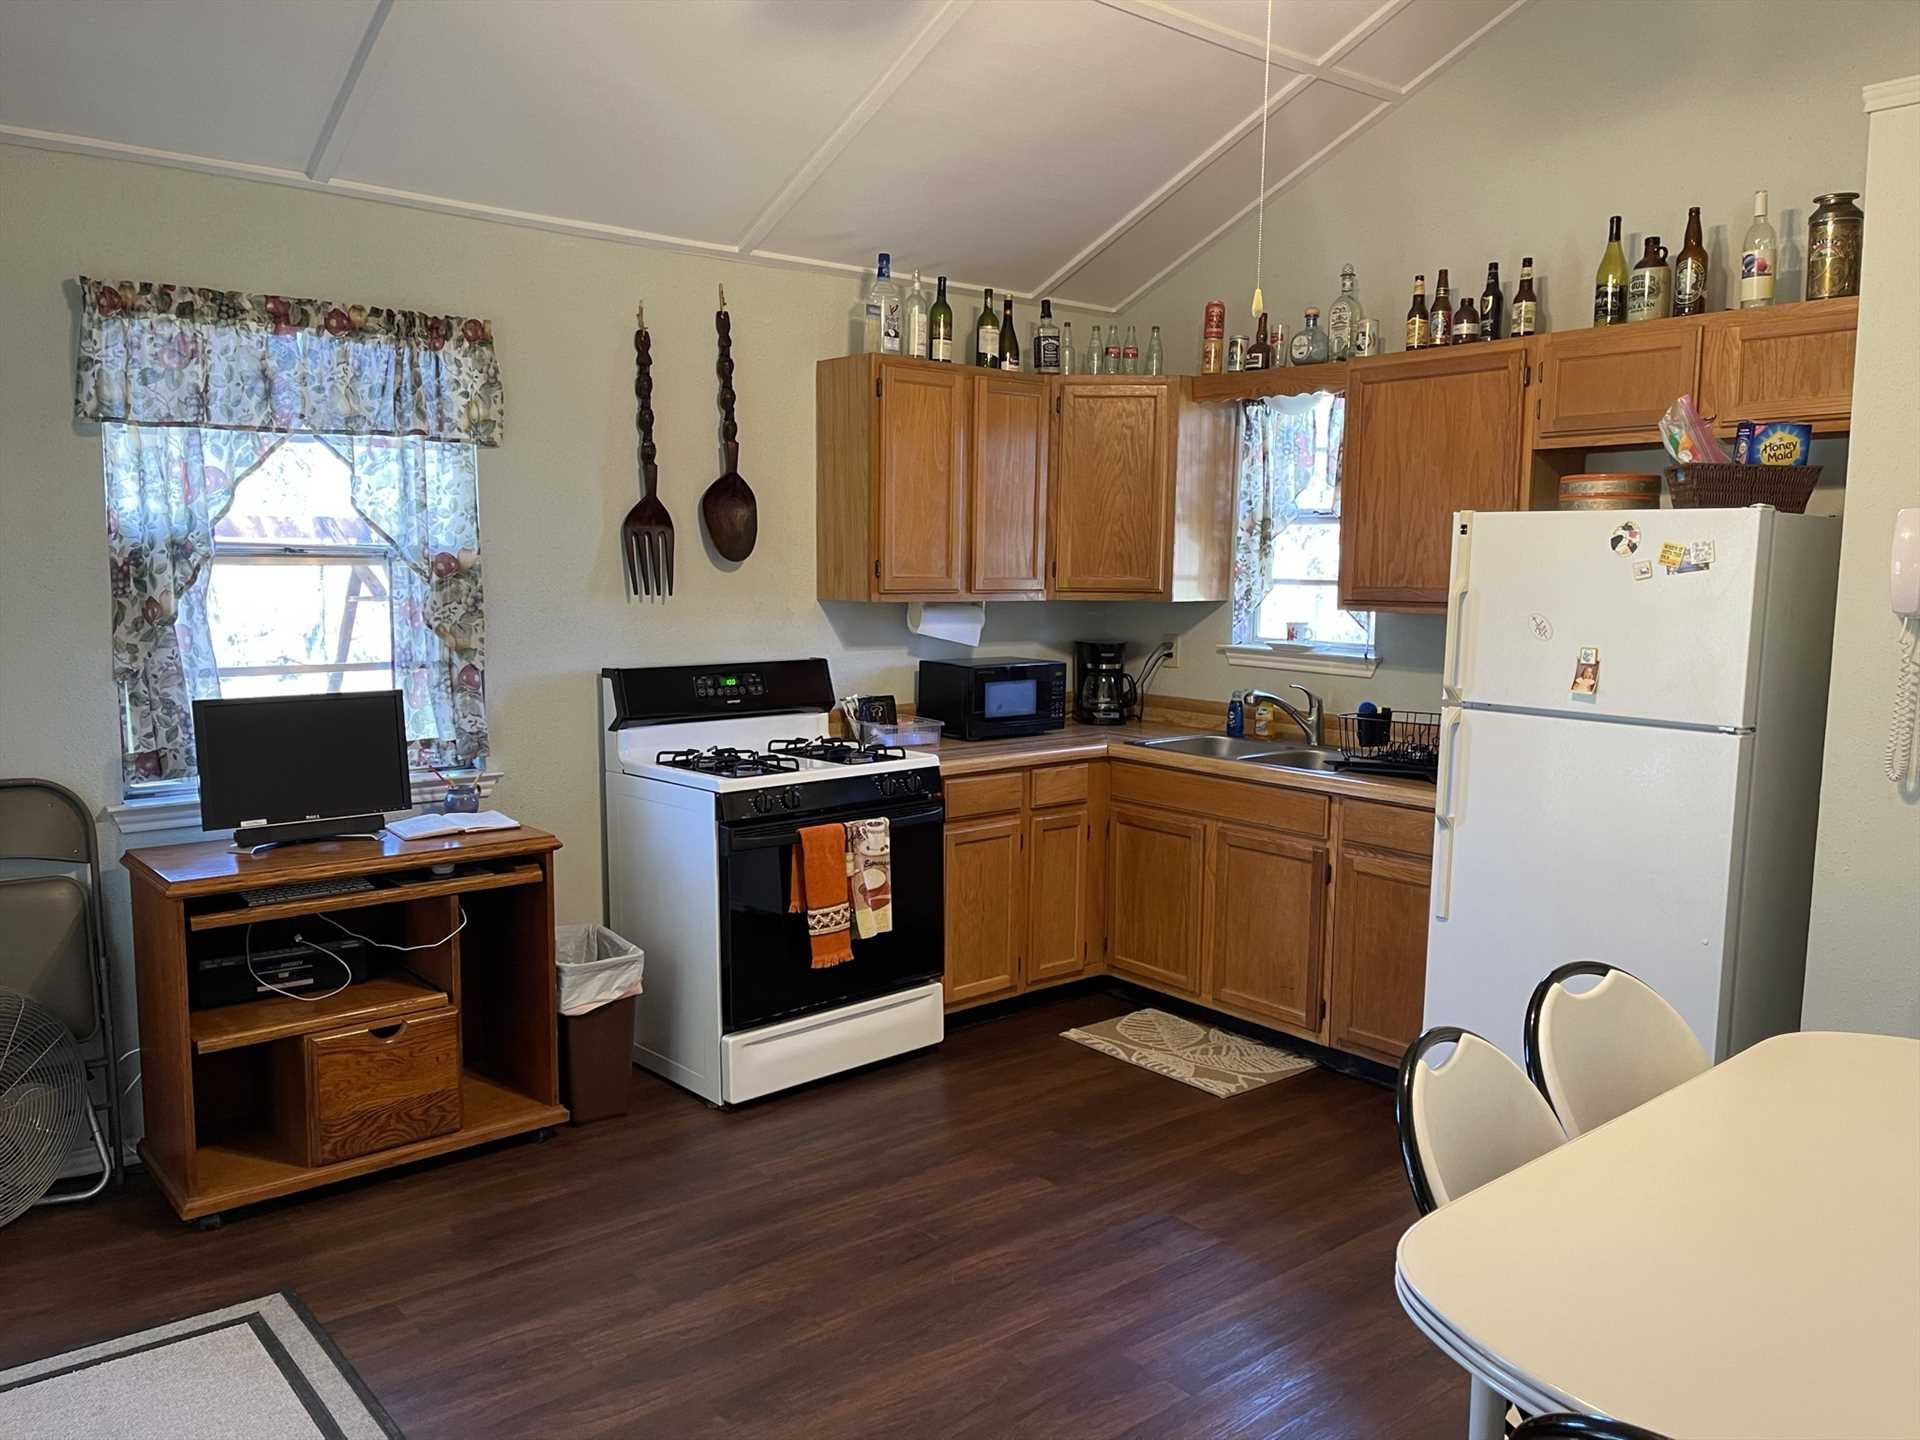 The full kitchen has a fun personality all its own! It's equipped with appliances and utensils, as well as a cozy dining area.